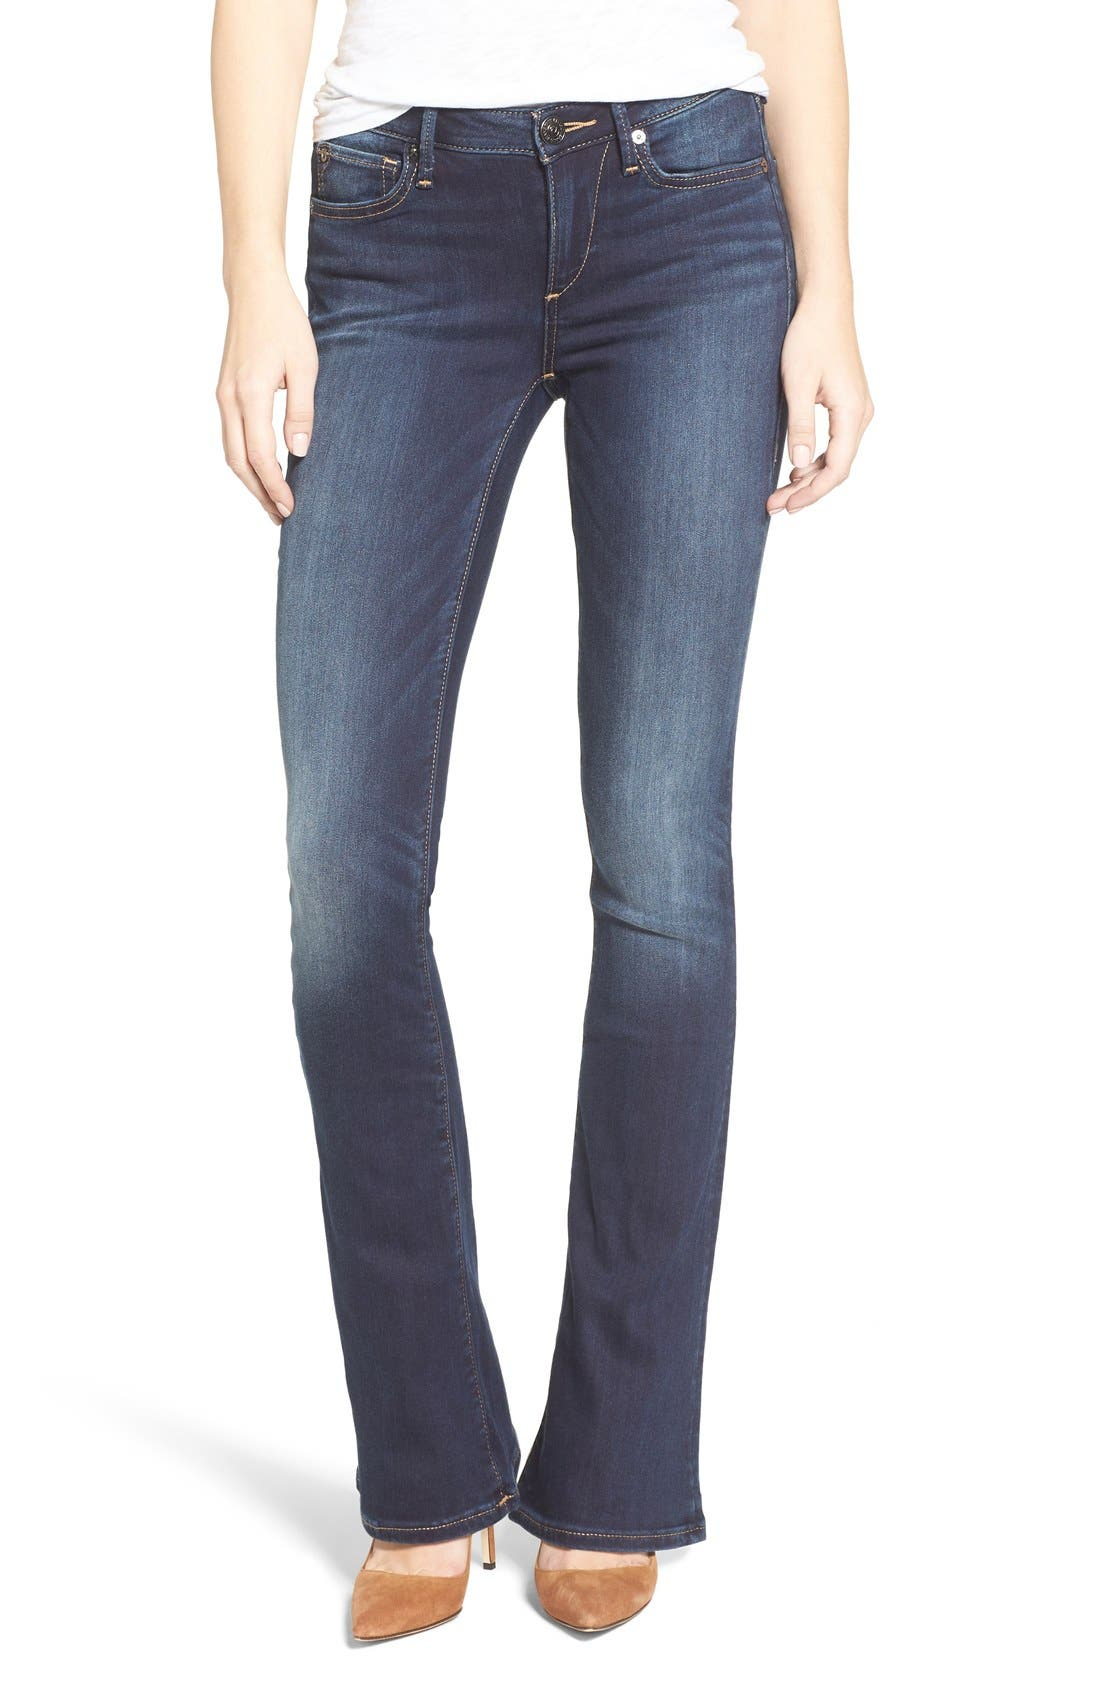 True Religion Brand Jeans Jennie Curvy Bootcut Jeans (Native Orca Clean)